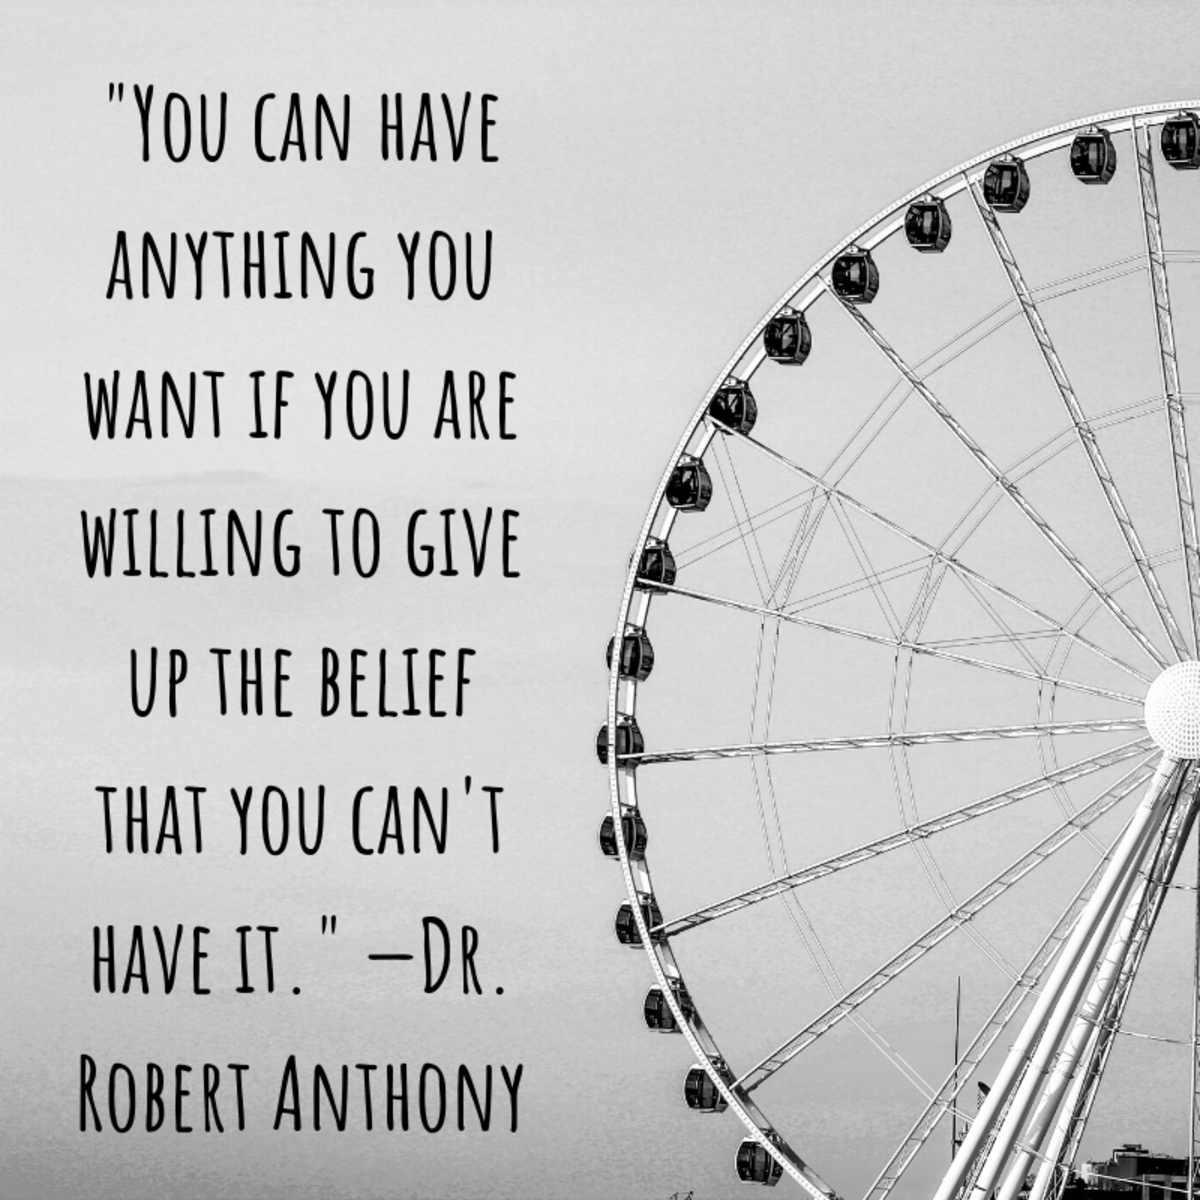 """You can have anything you want if you are willing to give up the belief that you can't have it."" —Dr. Robert Anthony"